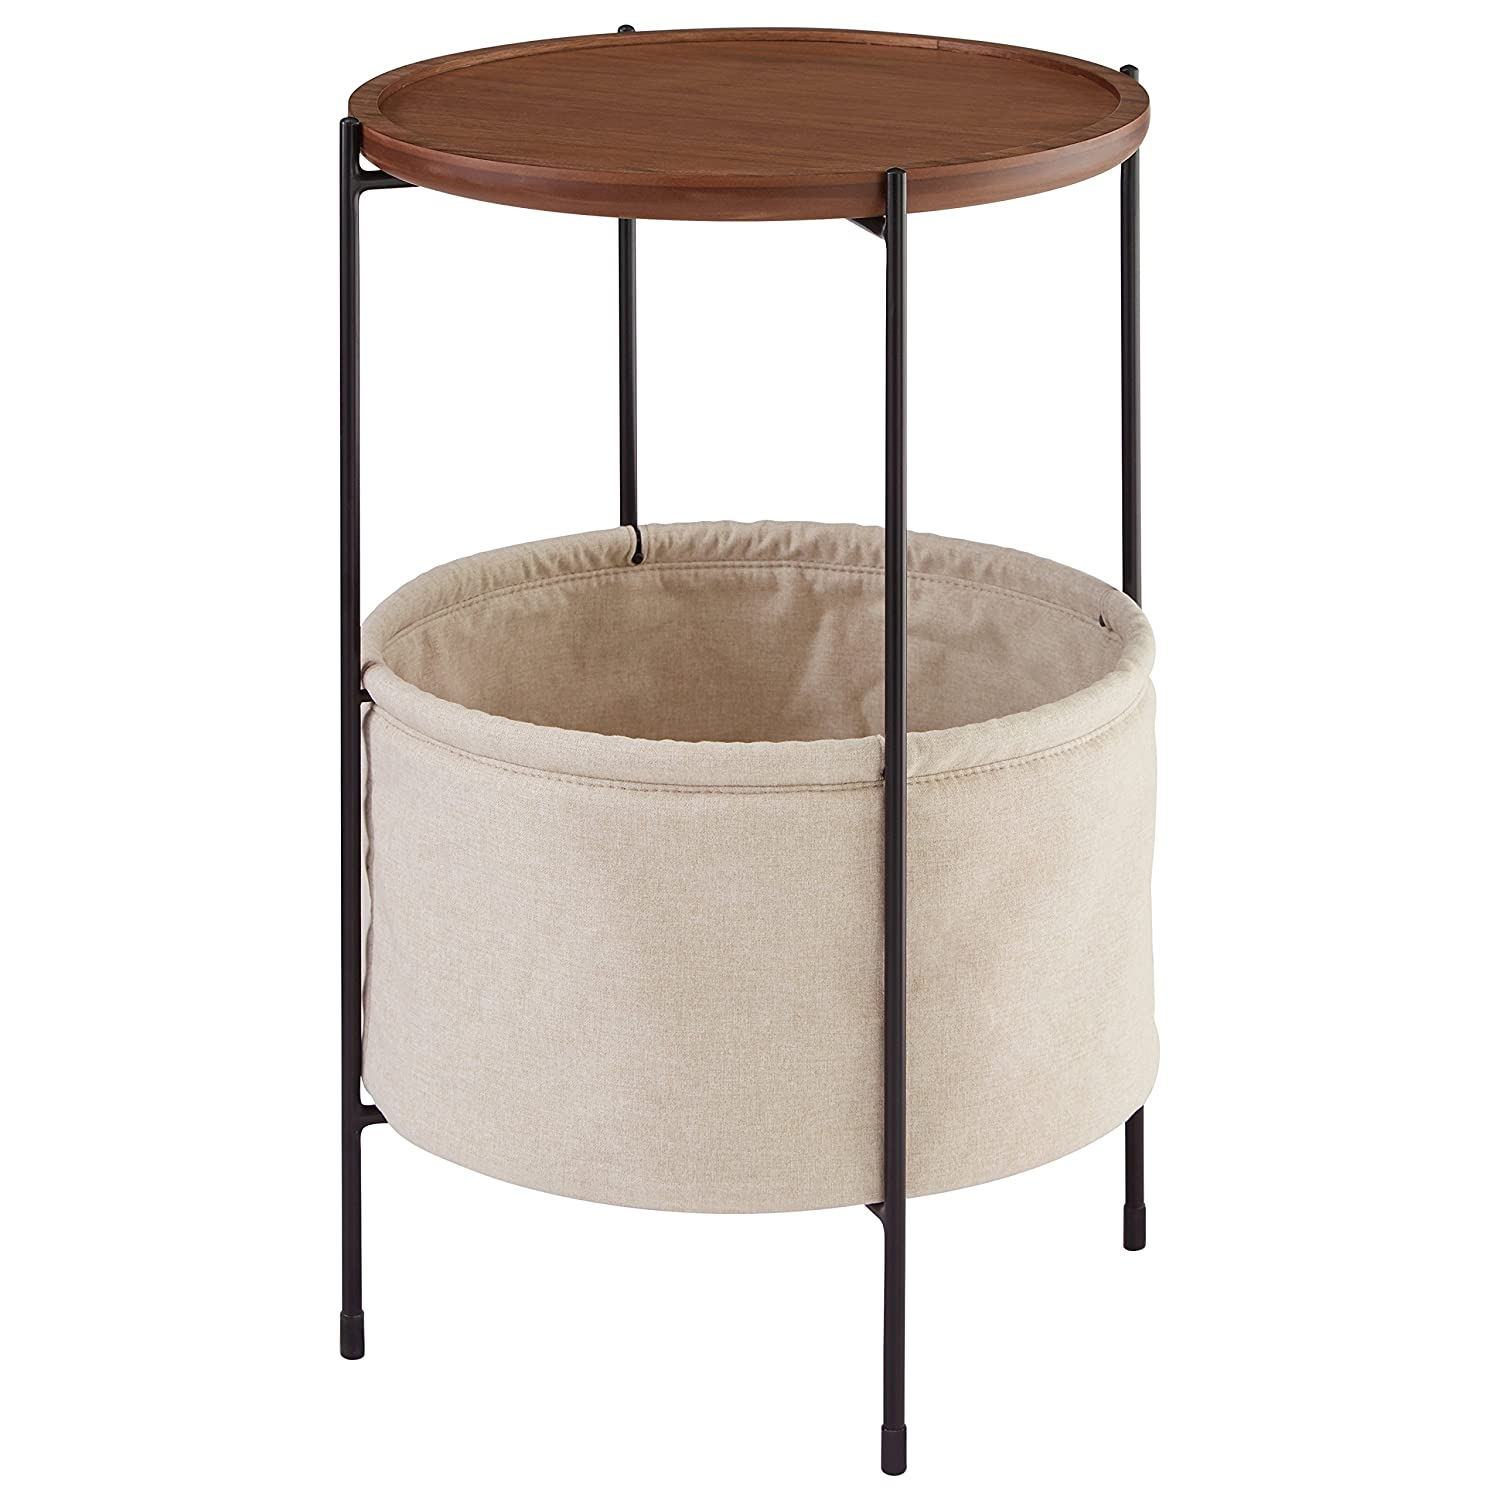 Rivet Meeks Round Storage Basket Side Table, Walnut and Cream Fabric